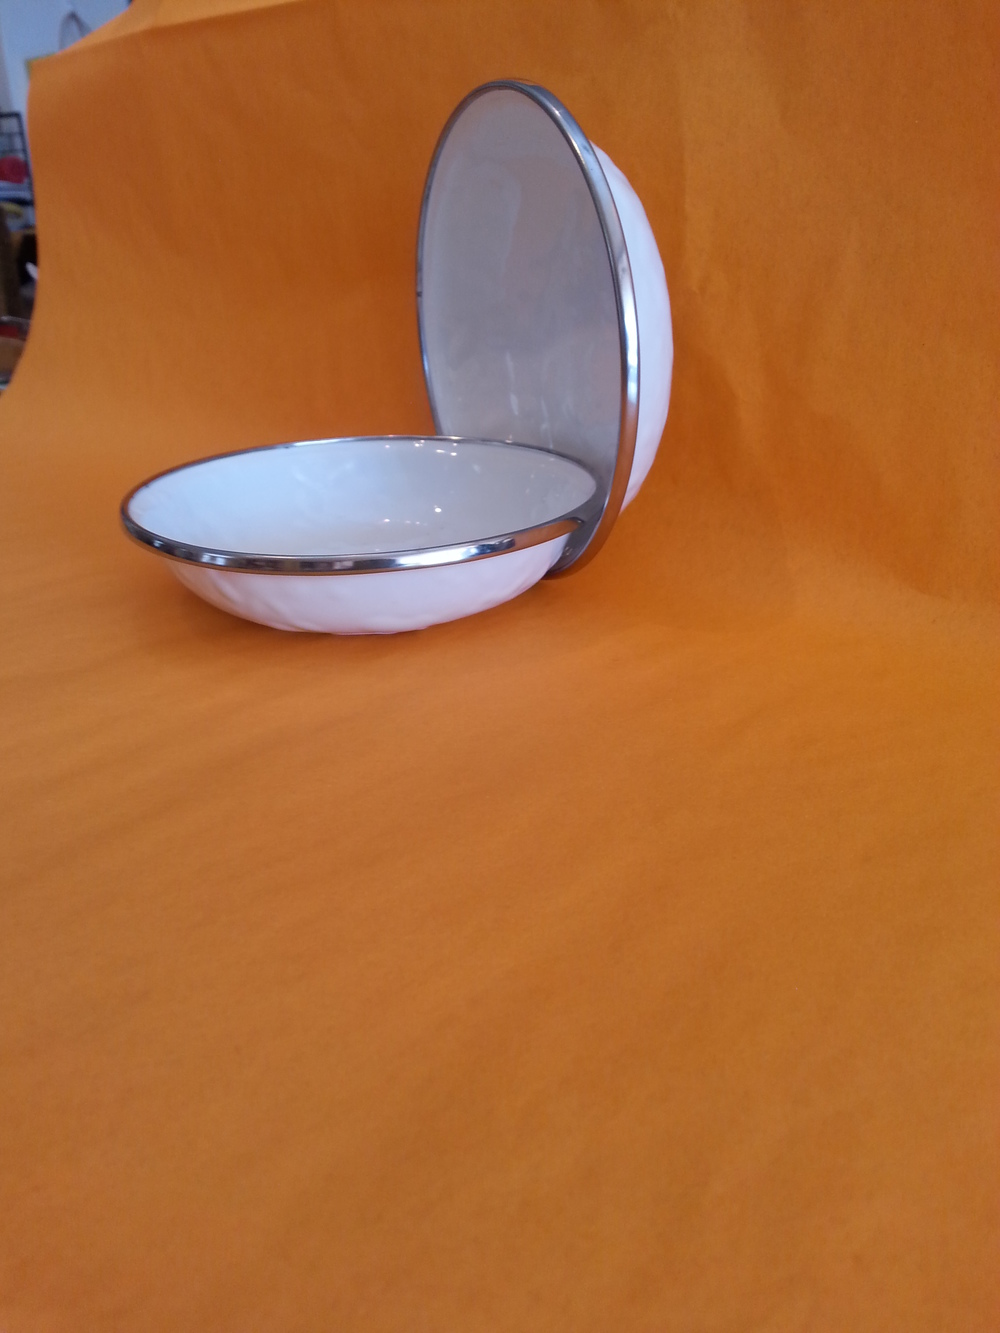 Small Enamelware Feeding Dish in white $6.95 each Wants 1 PURCHASED